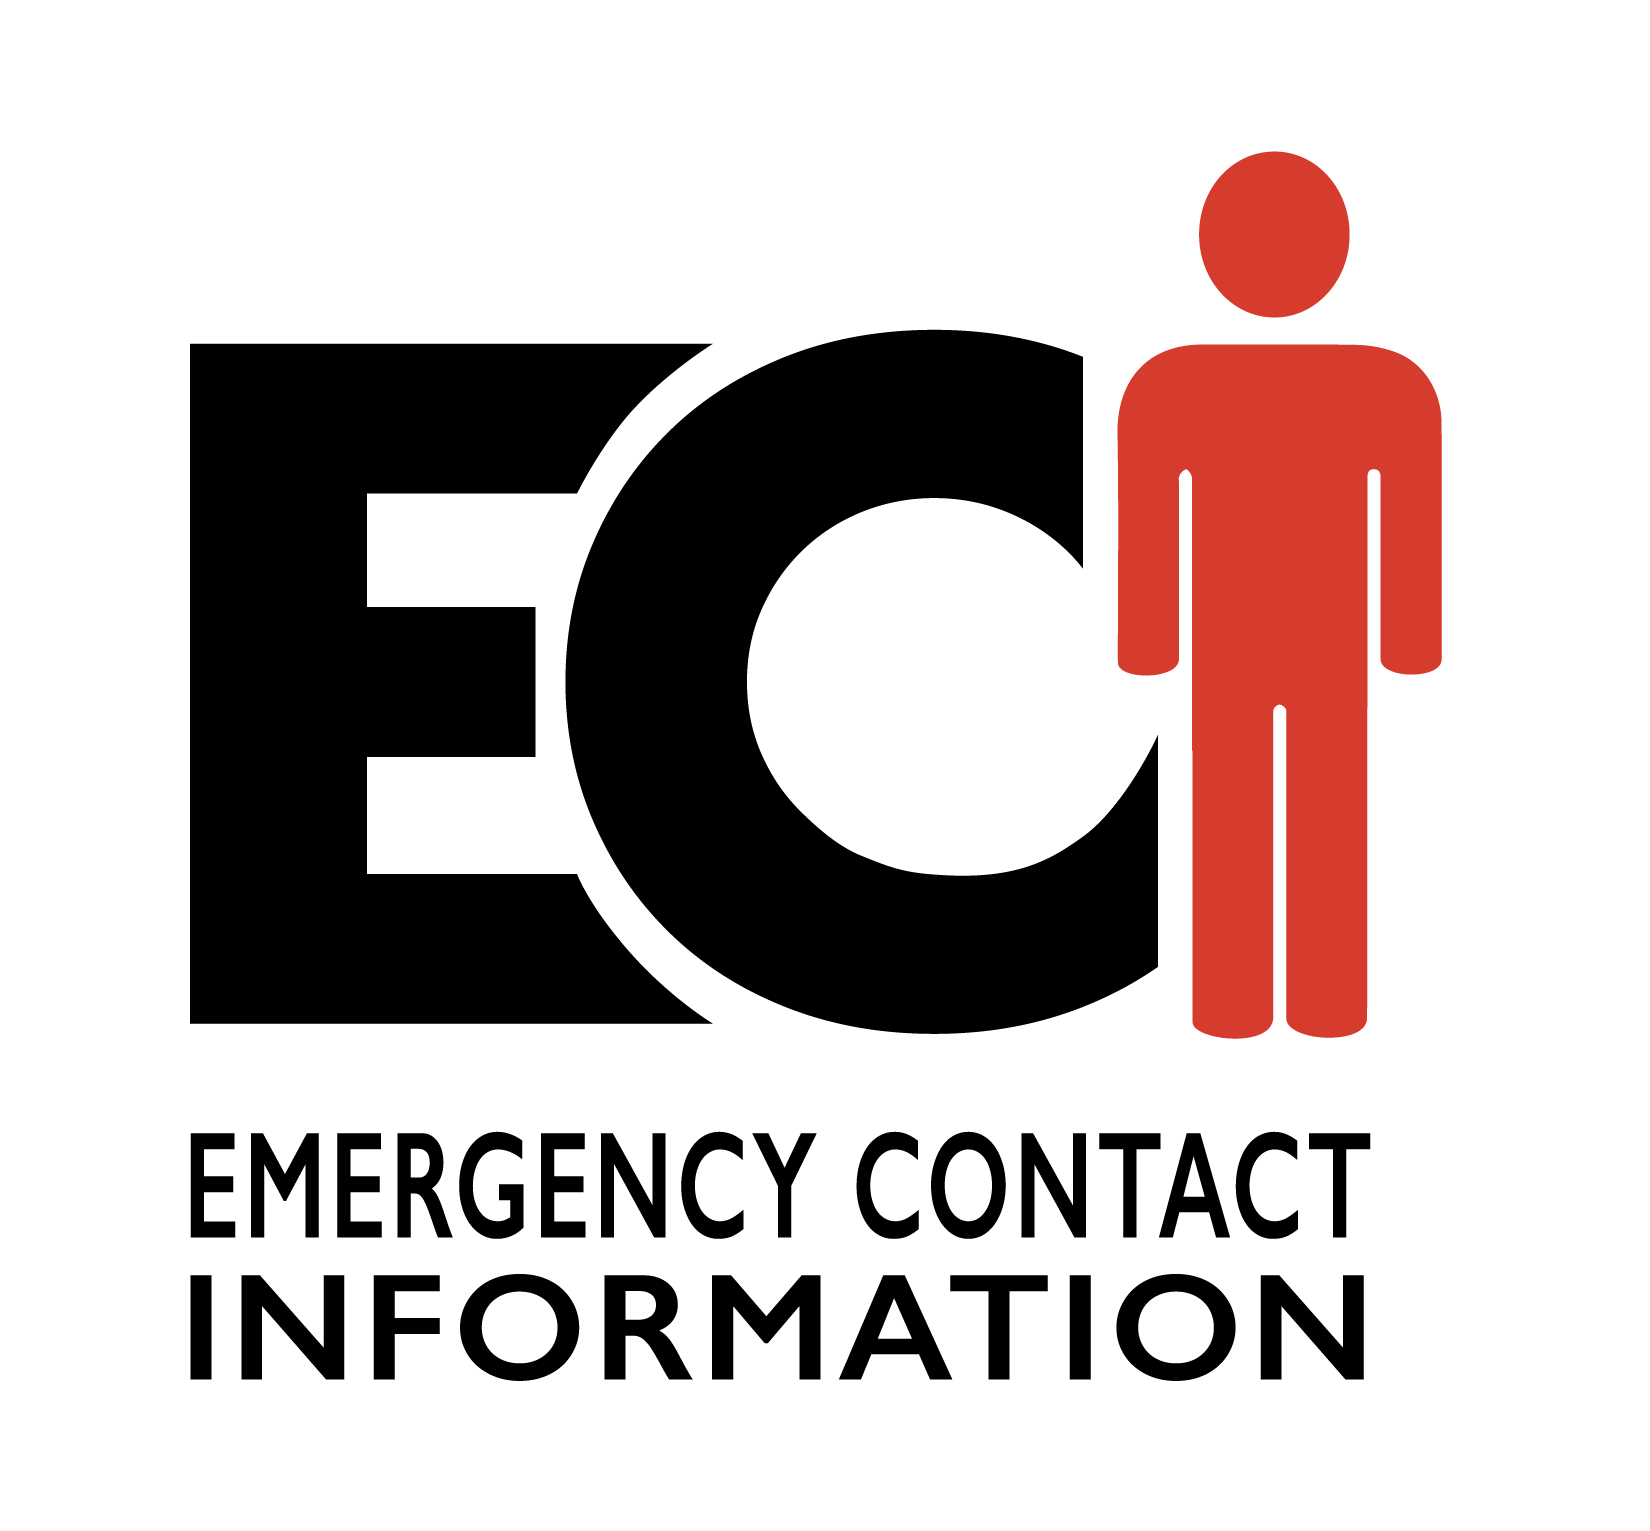 Contact registration help news. Emergency clipart accident emergency